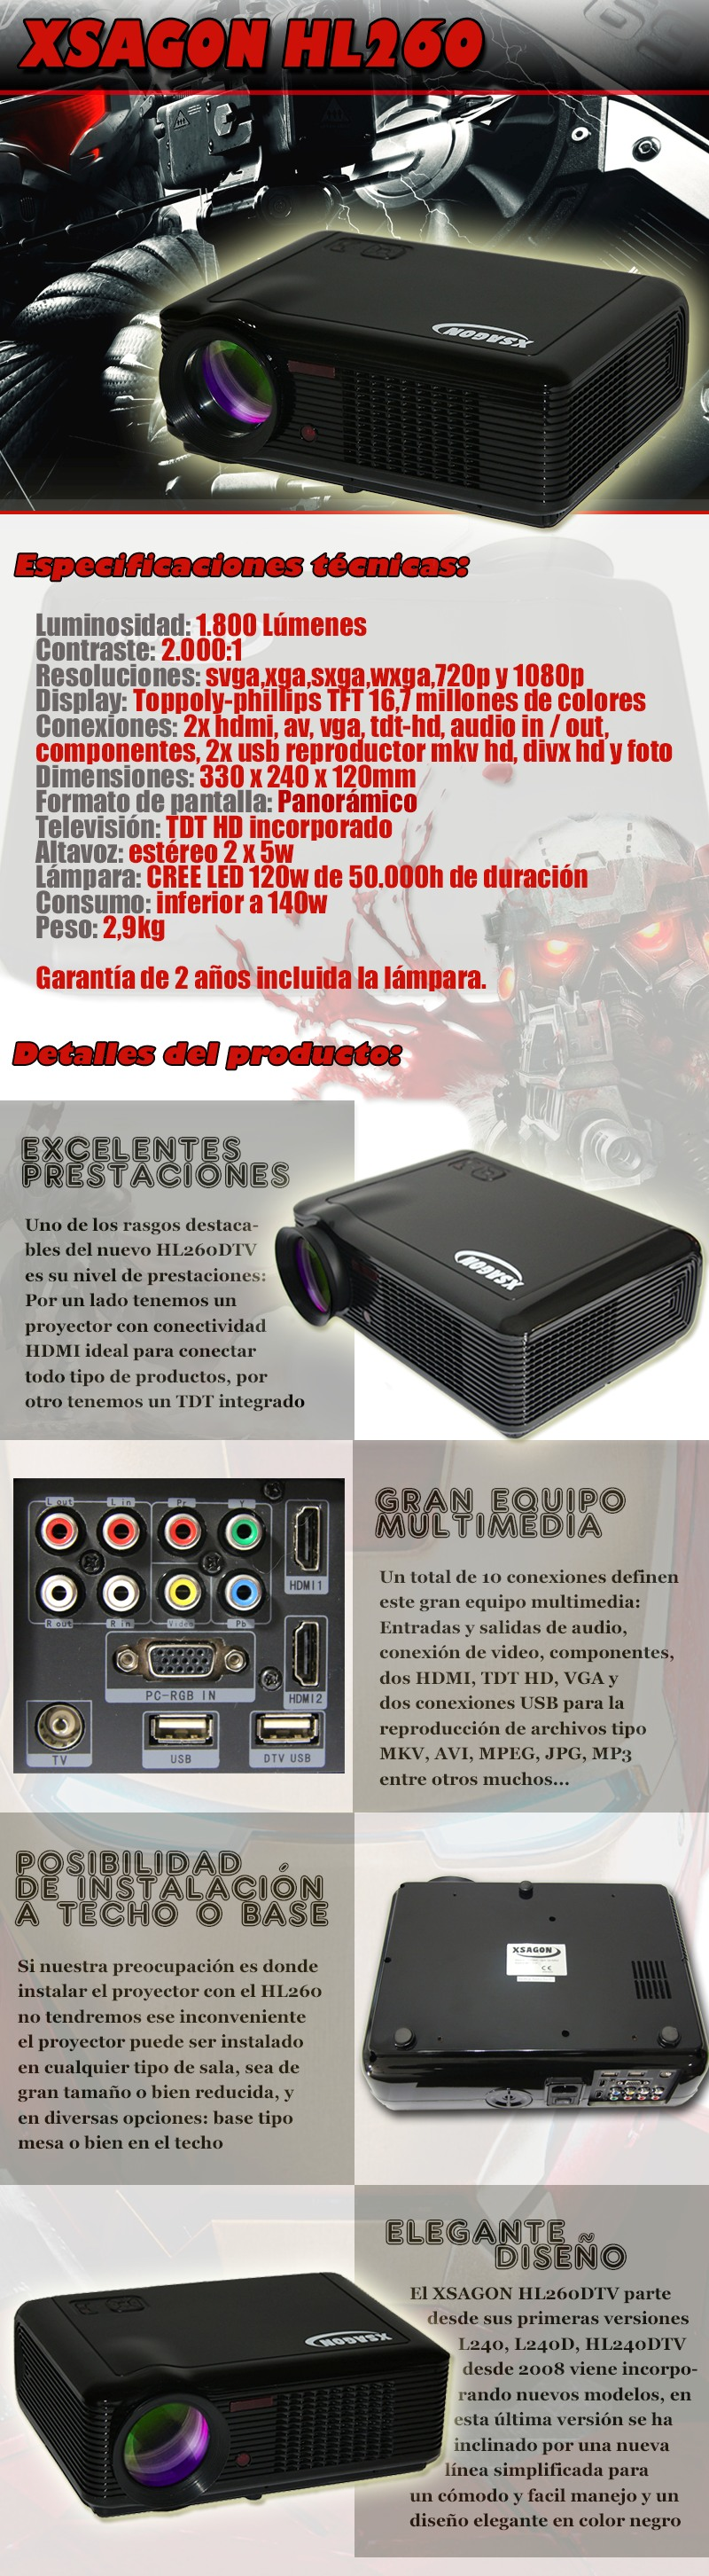 led projector with dvbt hd, 1080p resolution support, hdmi, vga, usb, led lamp